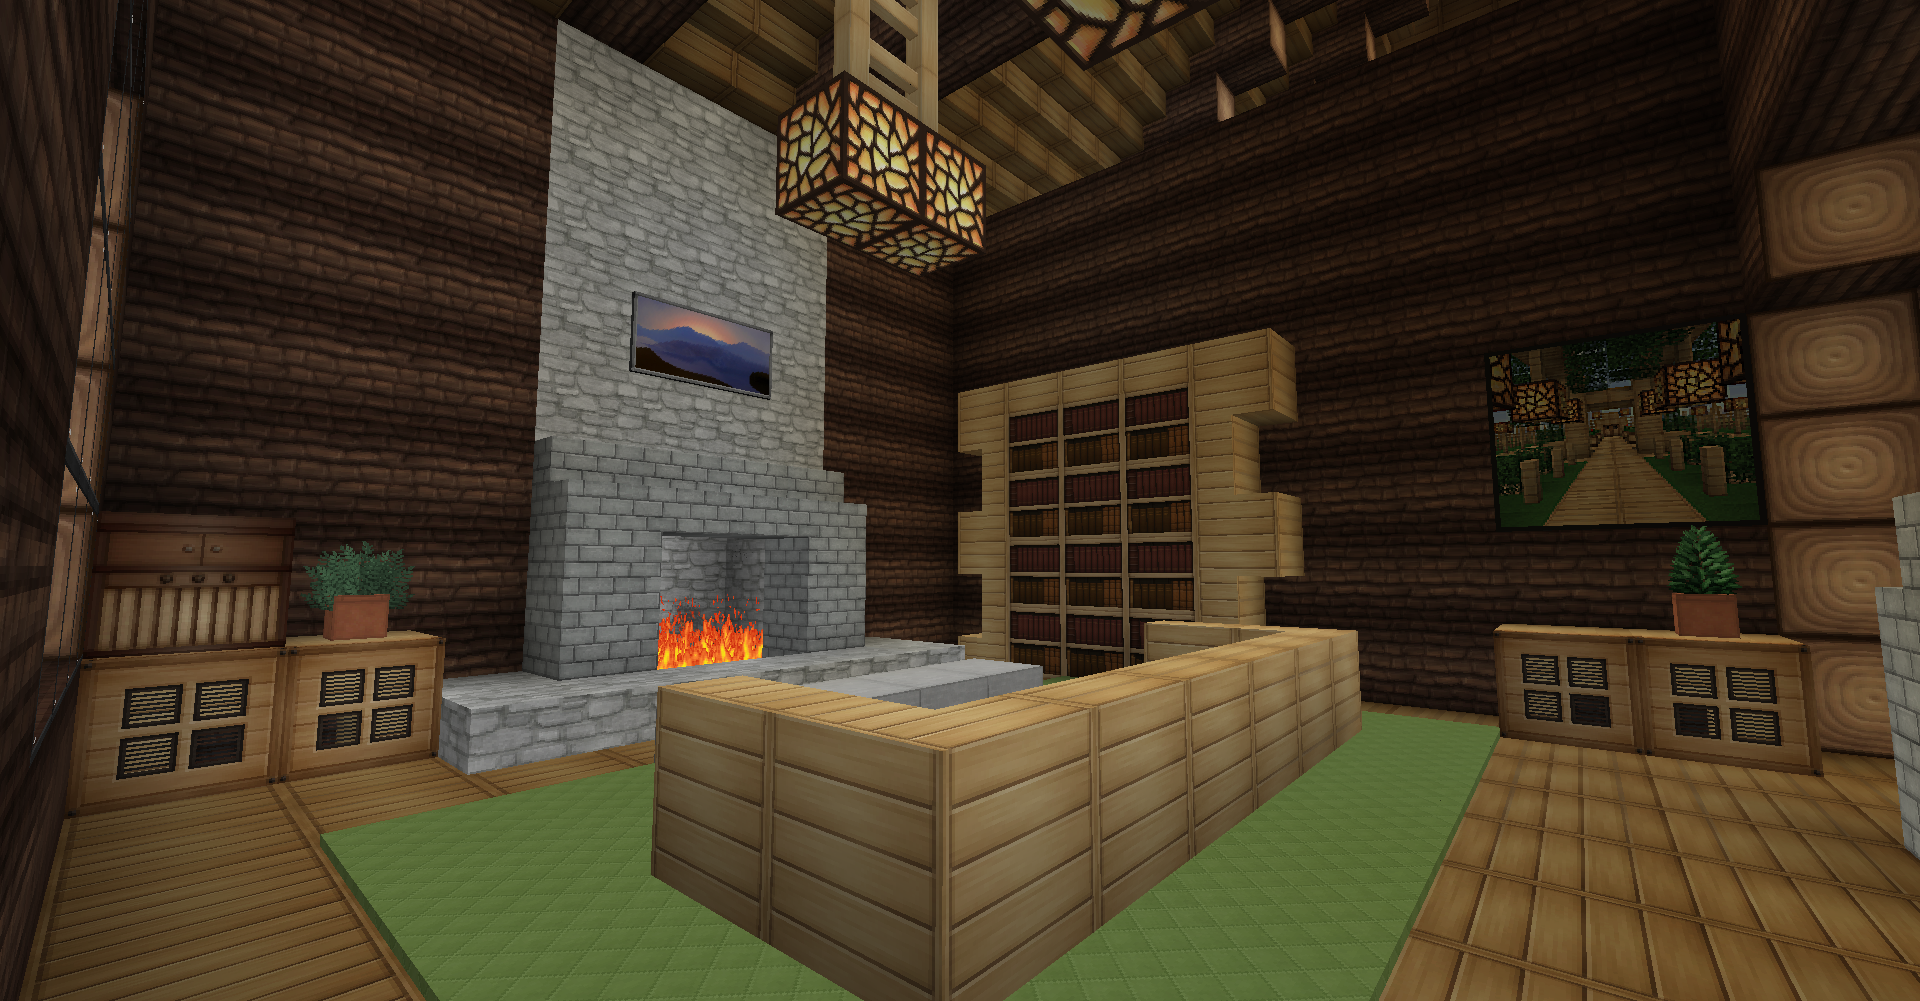 Minecraft Survival Log Cabin Interior Living Room Minecraft